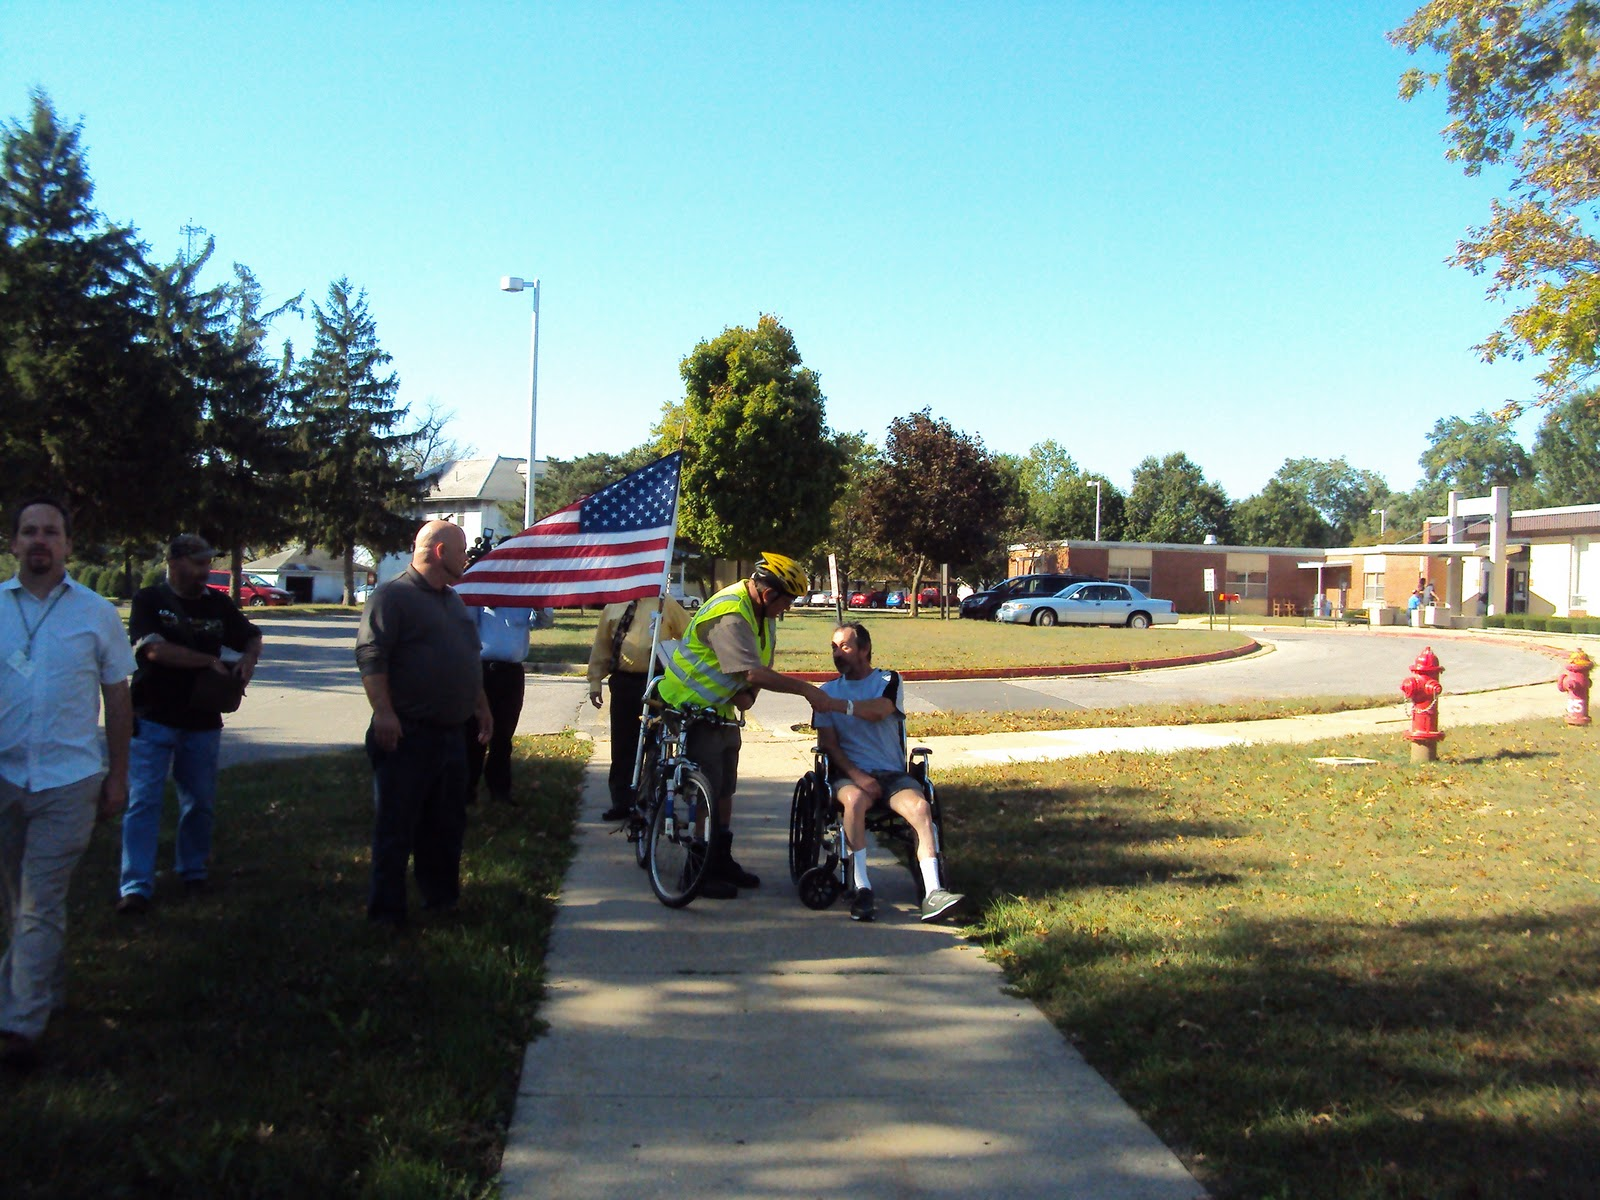 Illinois vermilion county muncie - I Certainly Never Expected The Hero S Welcome And All The Applause I Got Each Time A Group Applauded Me I Told Them I Took The Applause As Being For All